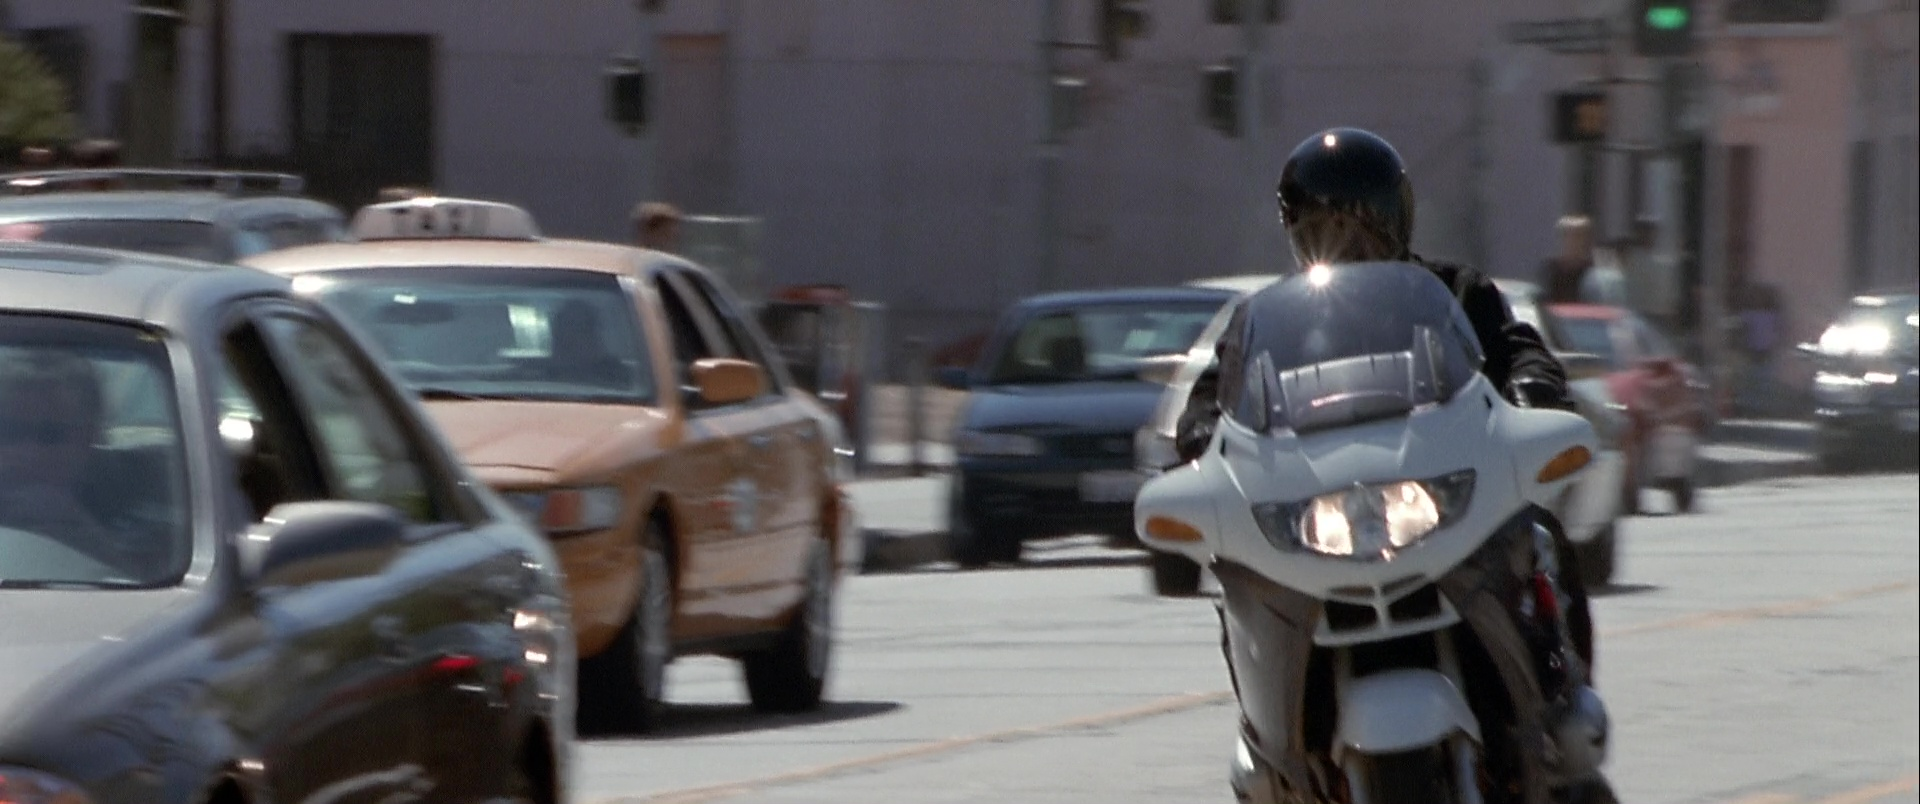 BMW R1150RT Motorcycles in The Italian Job (2003) Movie